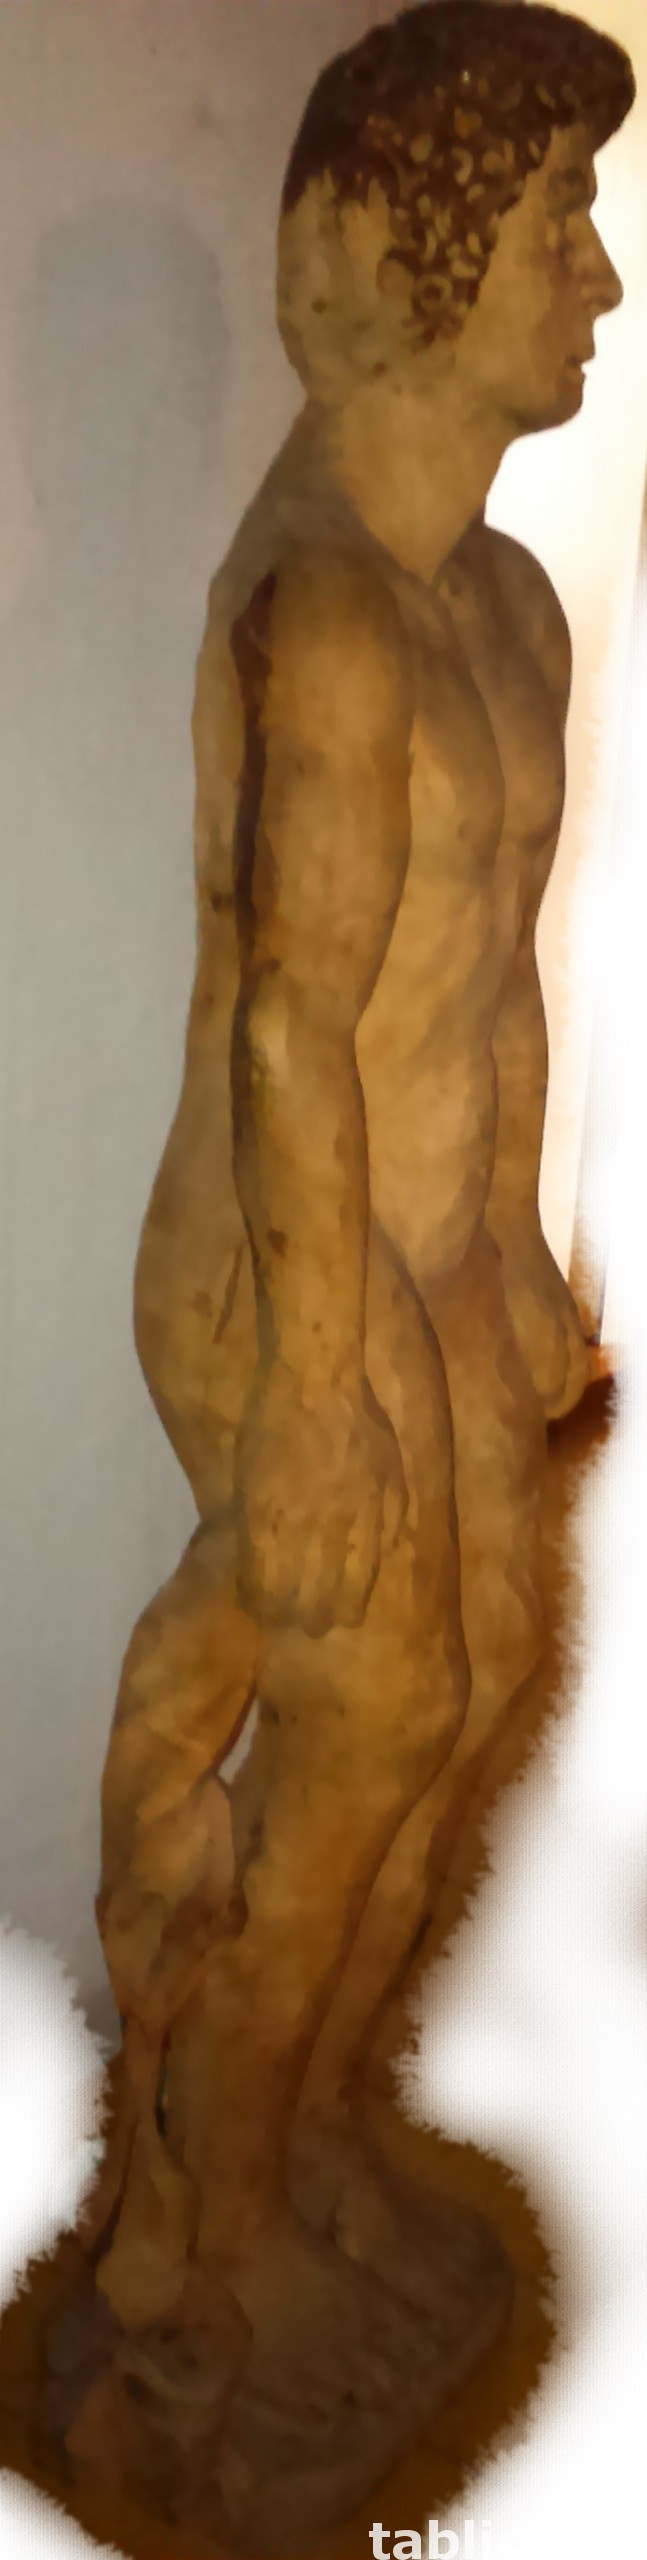 For Sale: Sculpture: The Looking Man 4